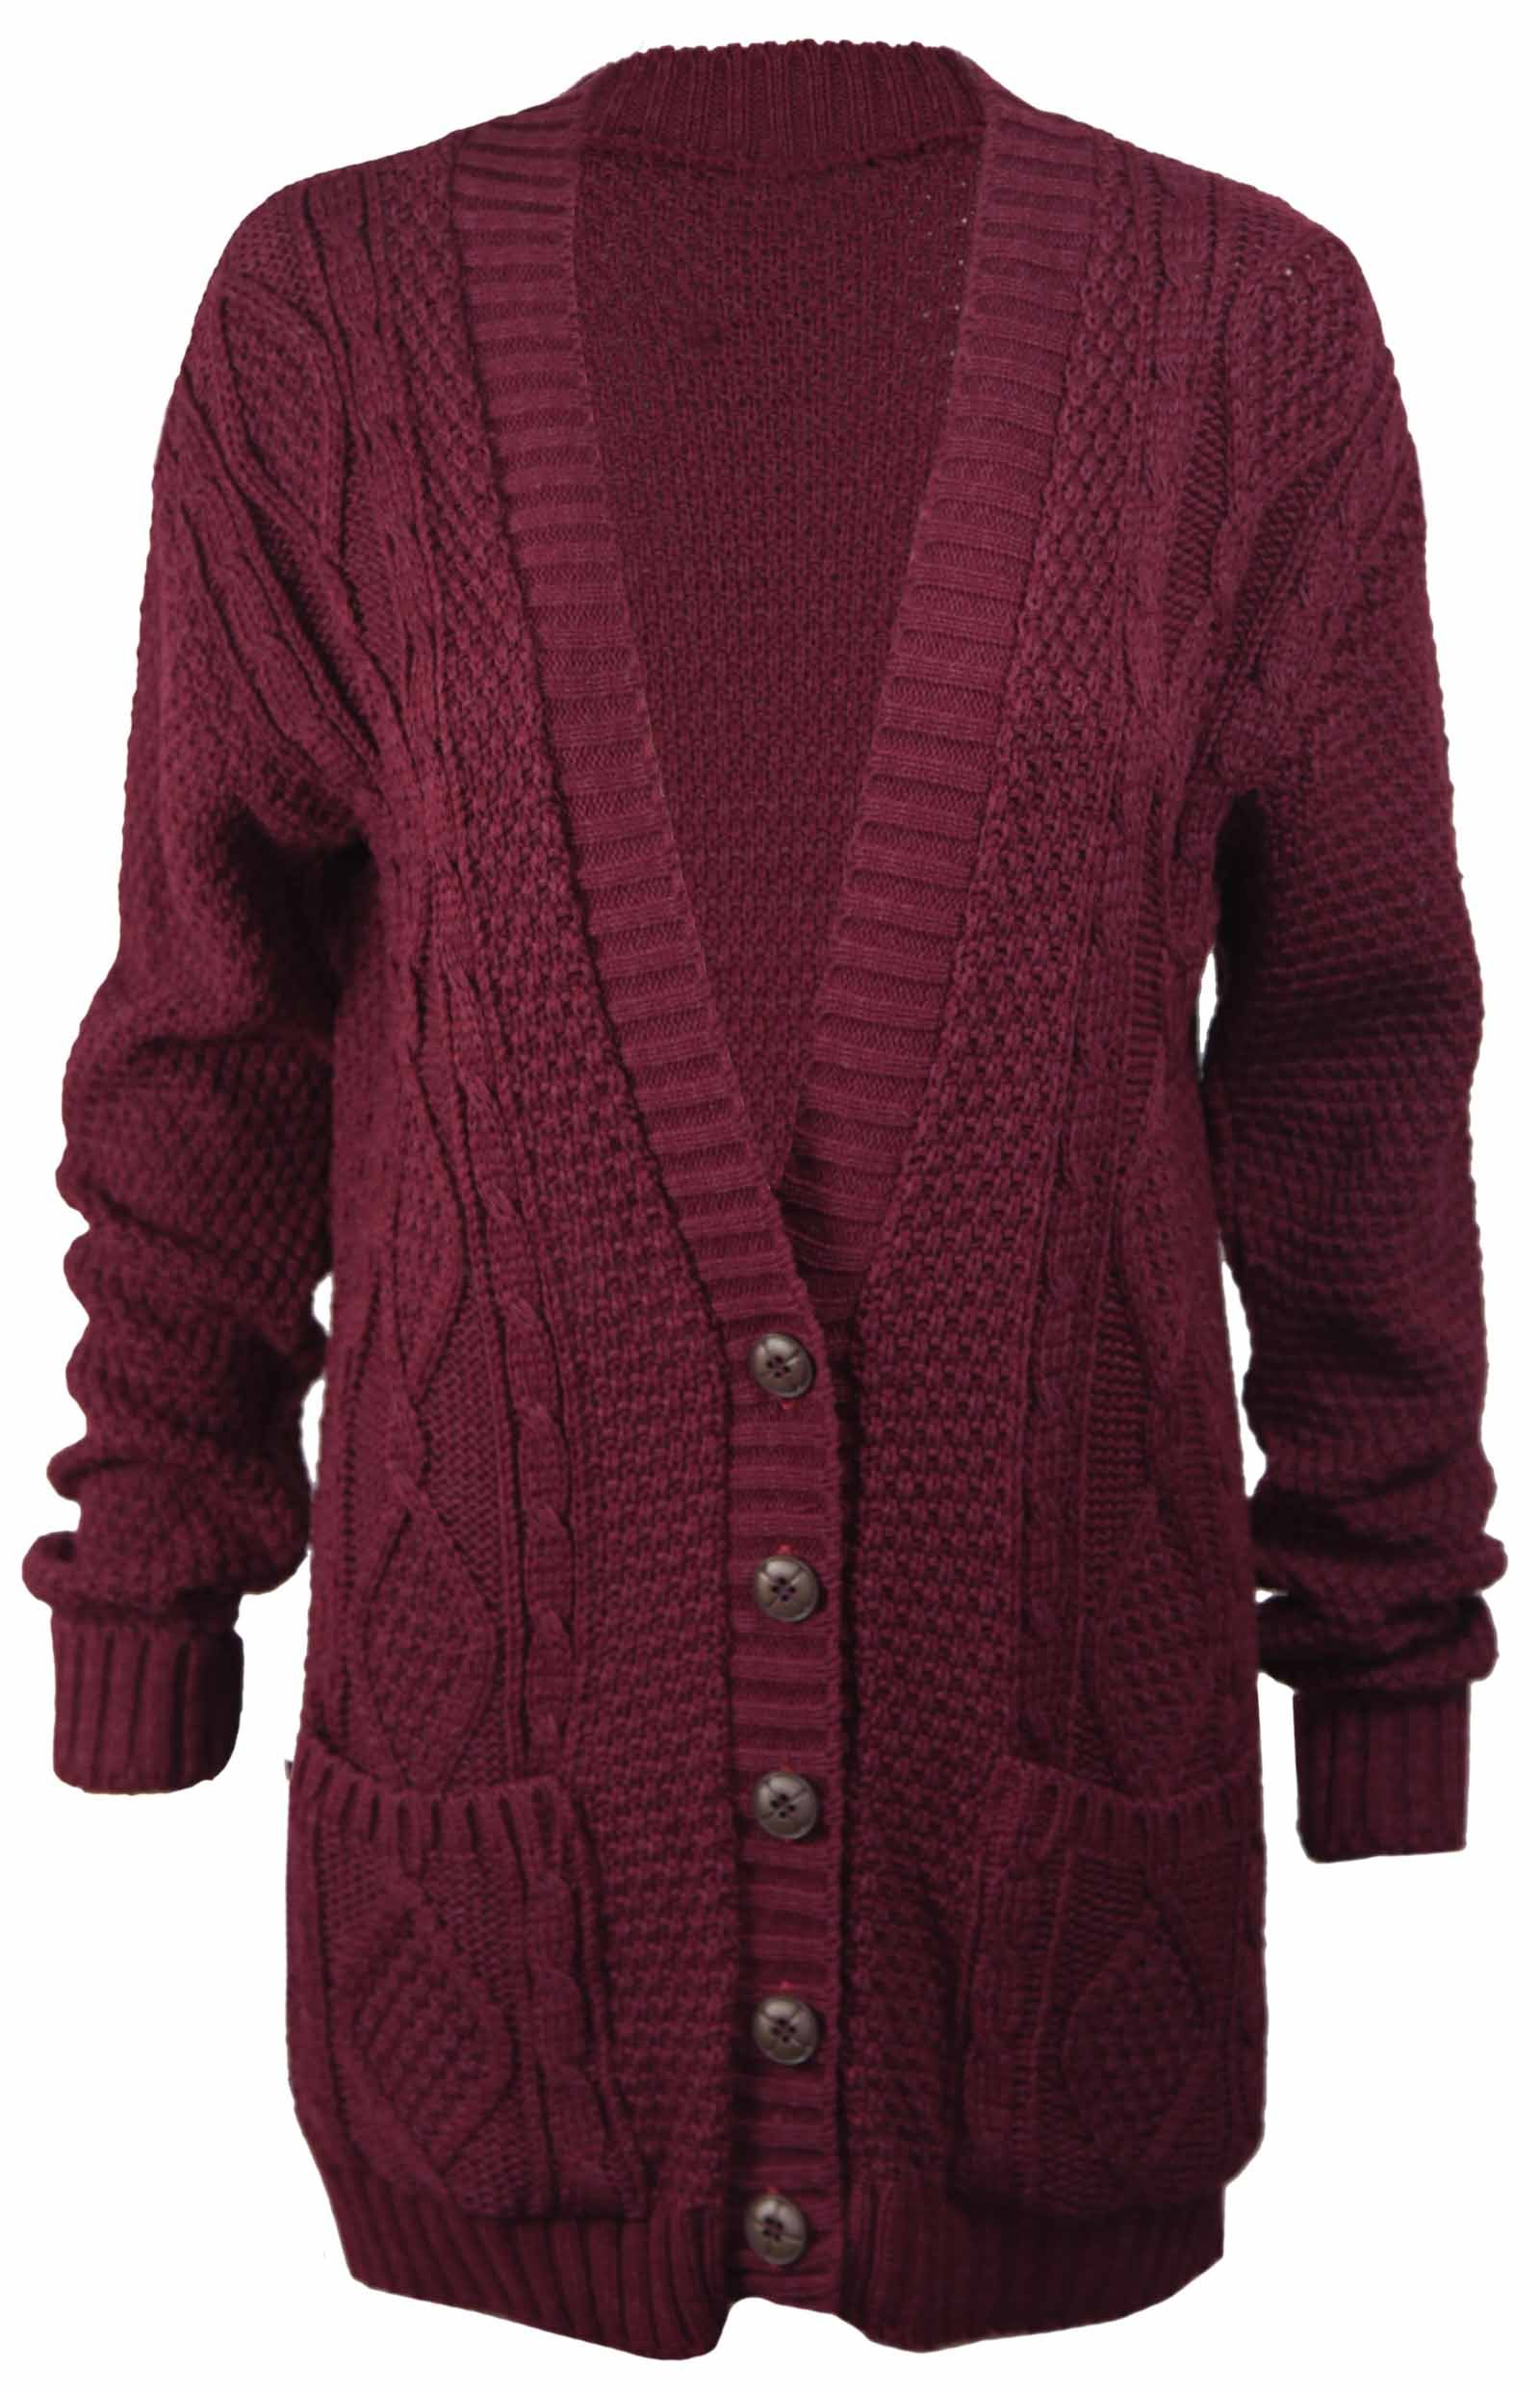 New Womens Everyday Long Sleeve Button Top Ladies Chunky Aran Cable Knit Grandad Cardigan